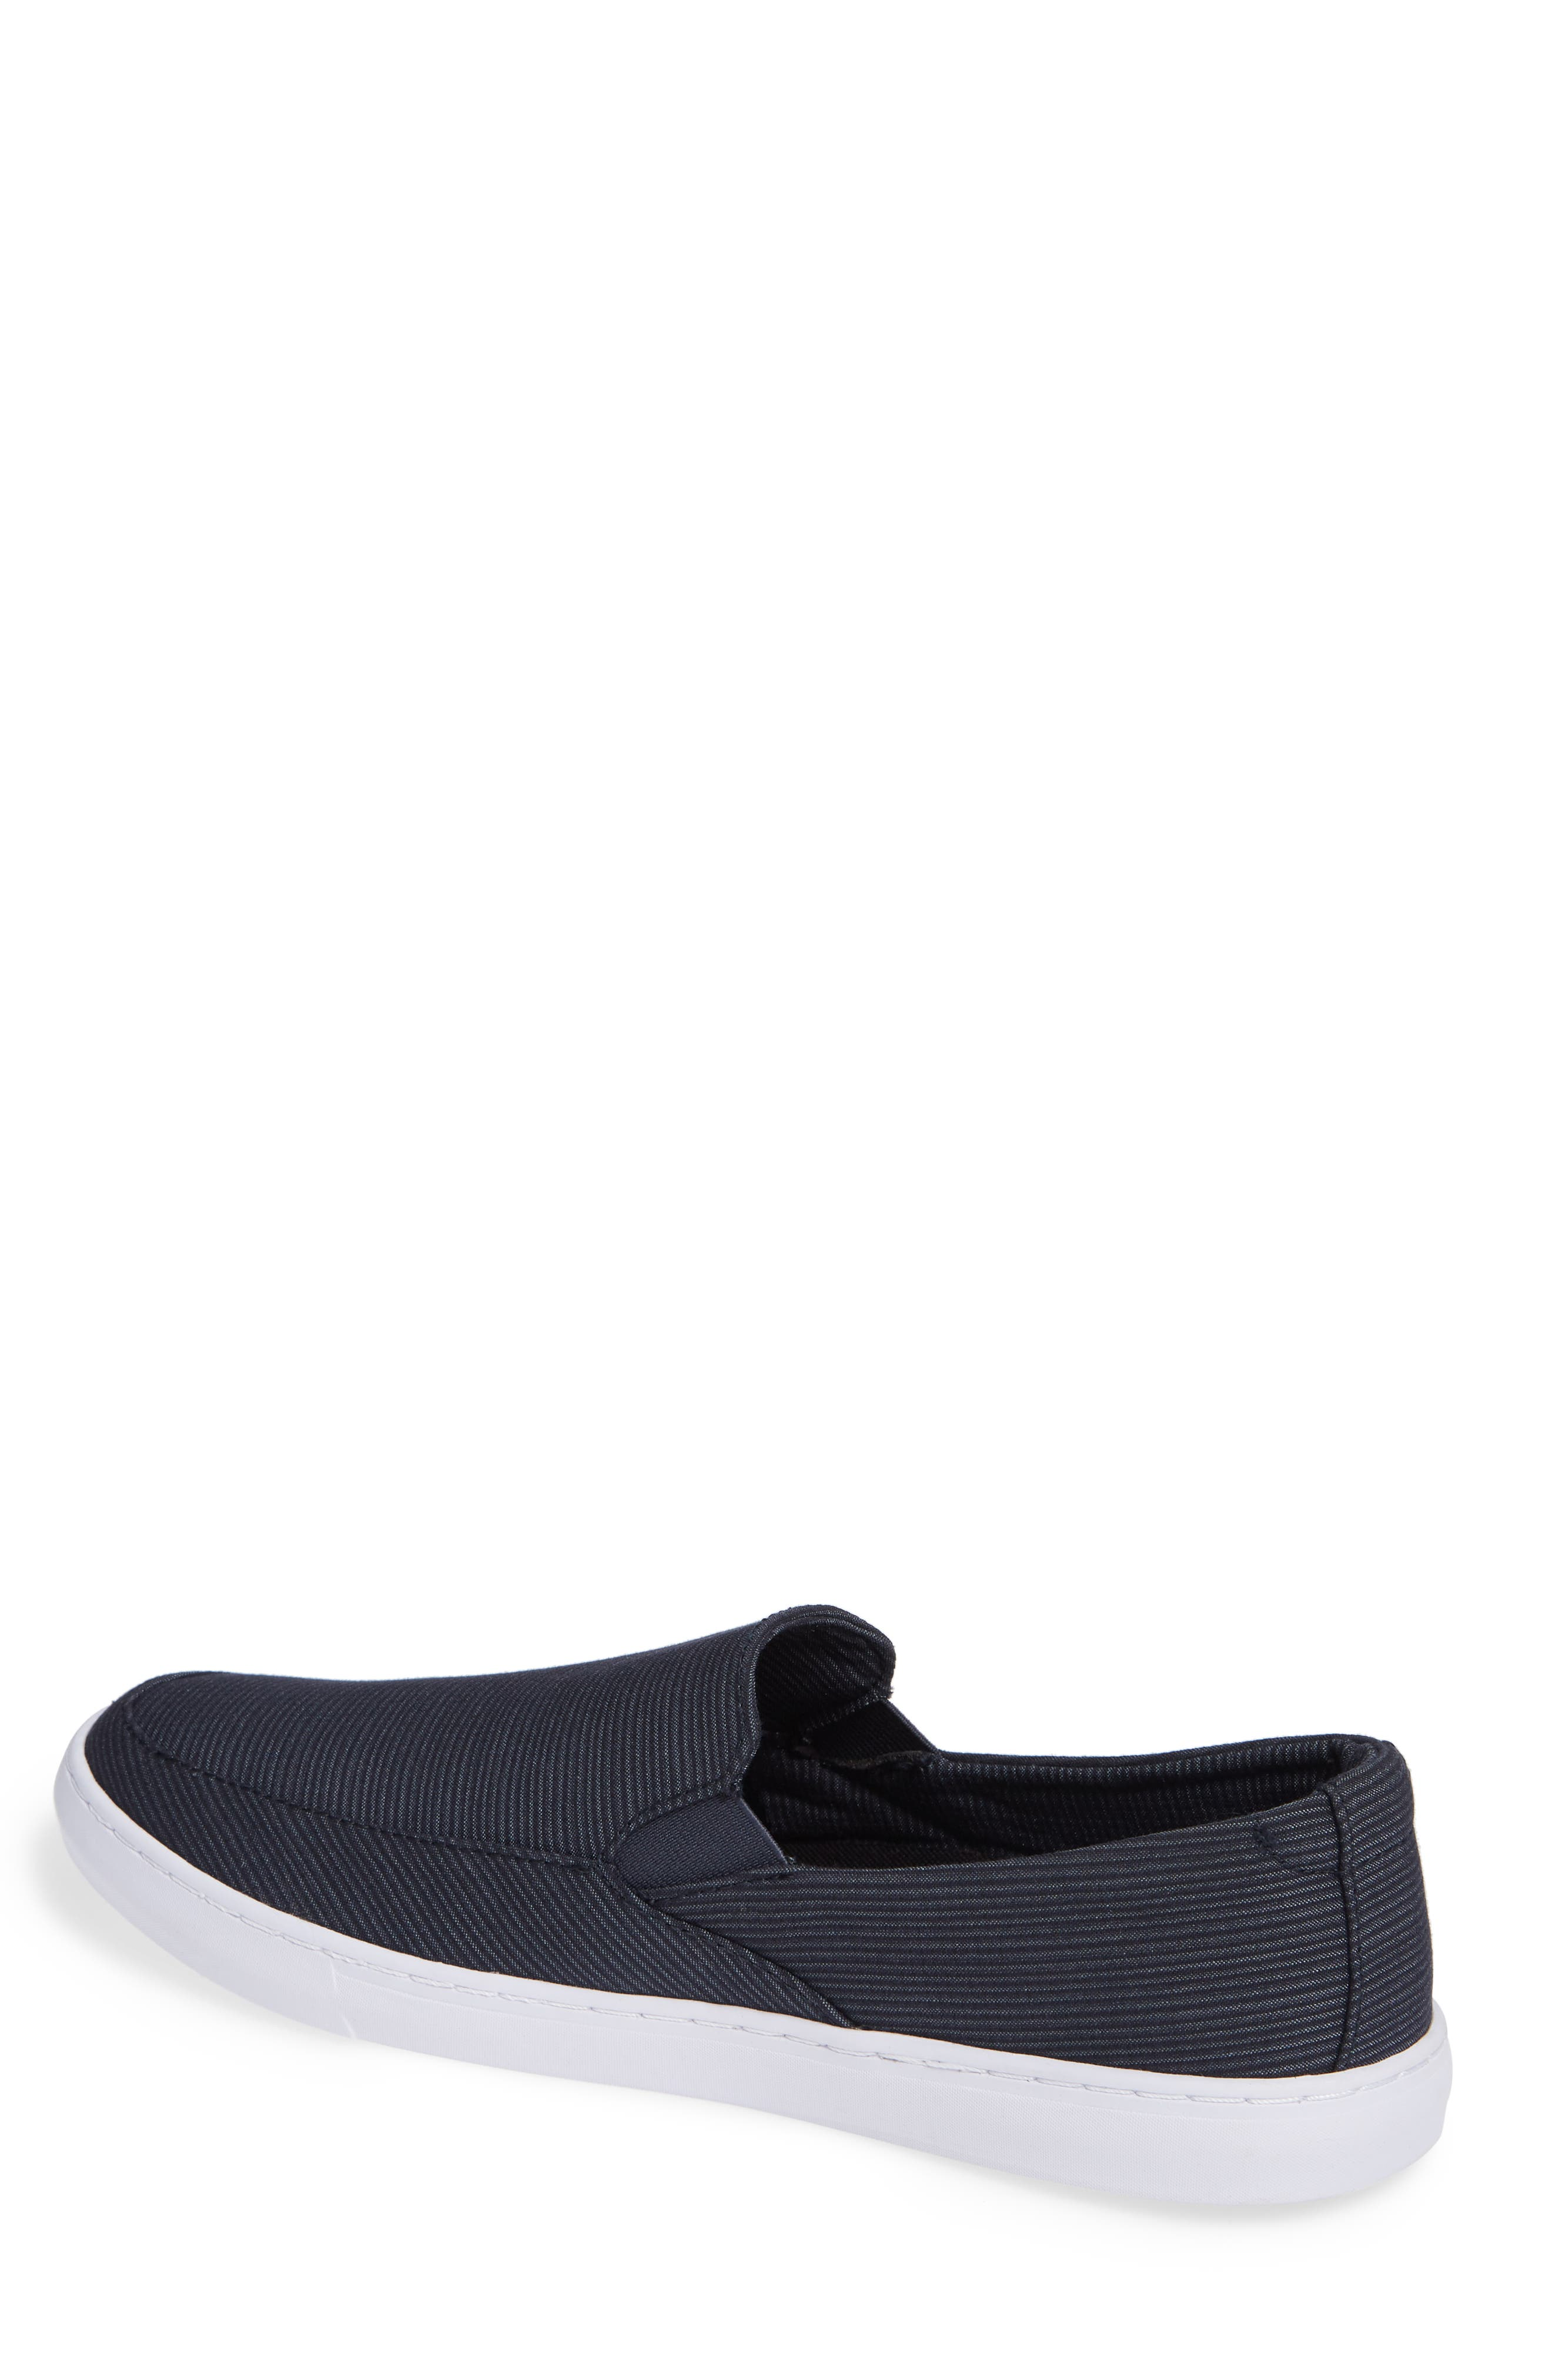 Cuater by Travis Mathew  Tracers Slip-On Sneaker,                             Alternate thumbnail 2, color,                             BLUE NIGHTS